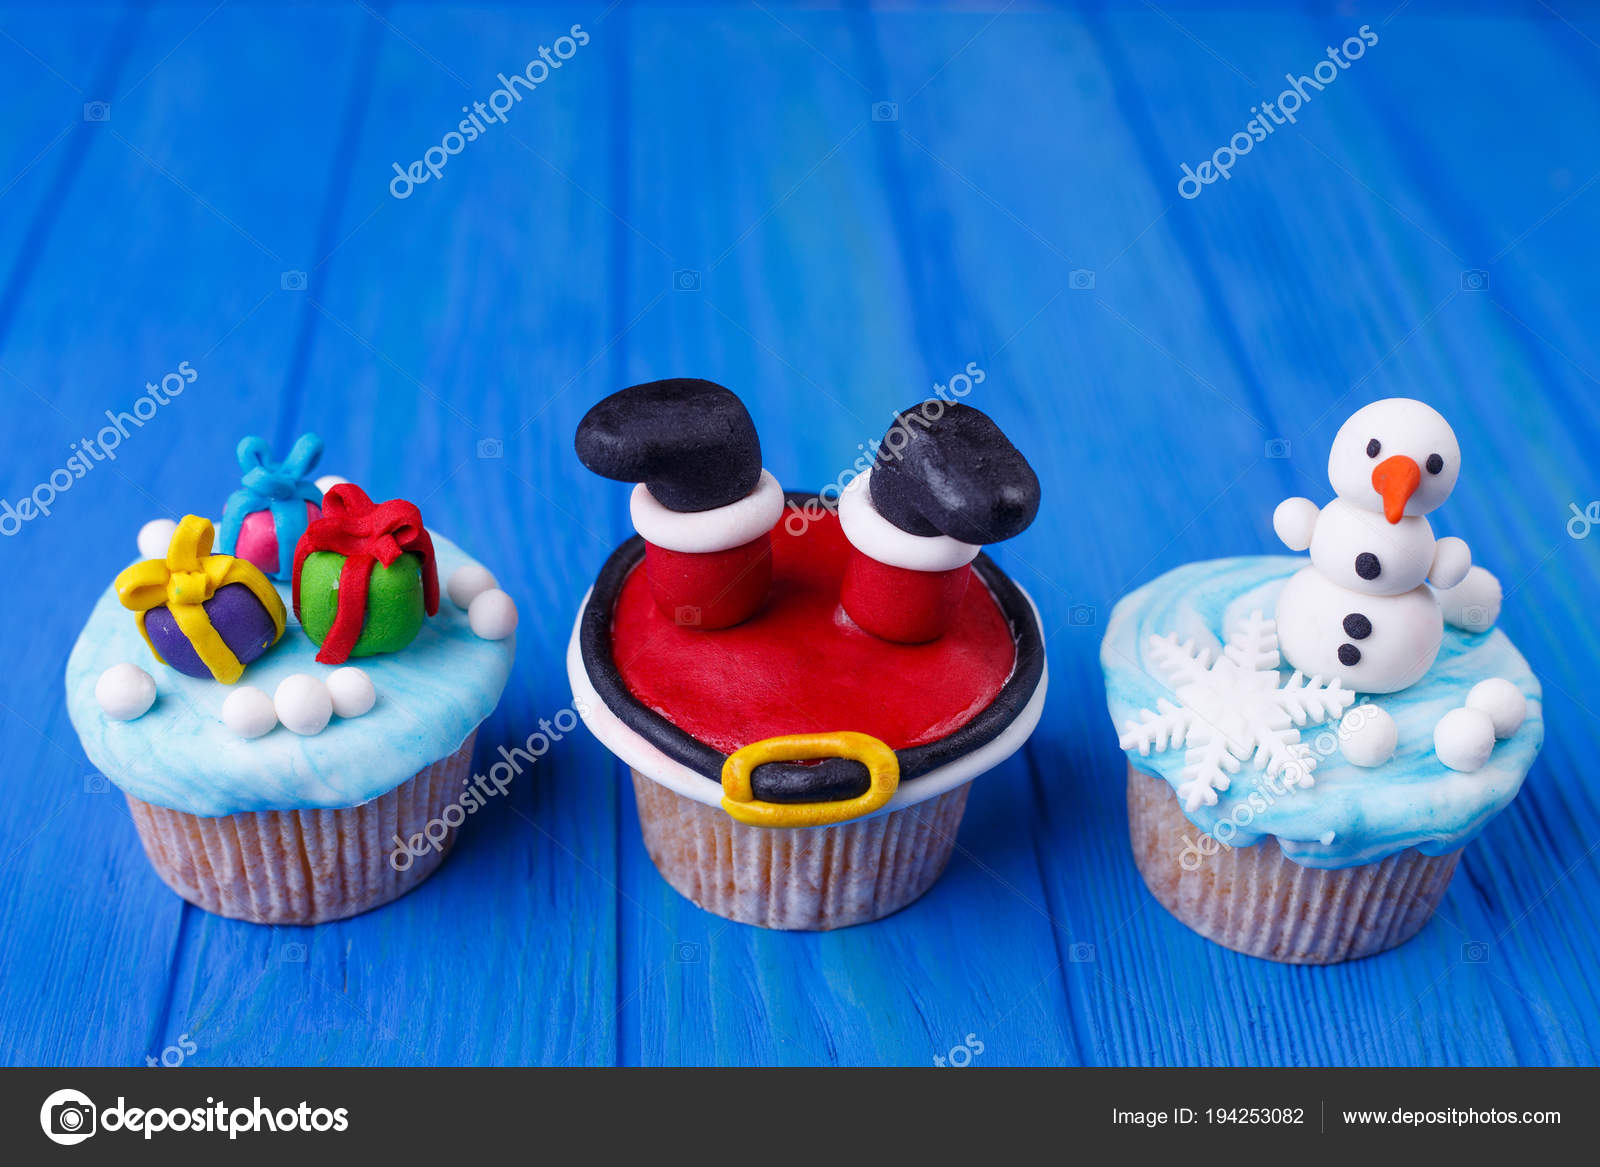 Christmas Themed Cakes Pictures.New Year Or Christmas Party Cupcakes Set With Funny